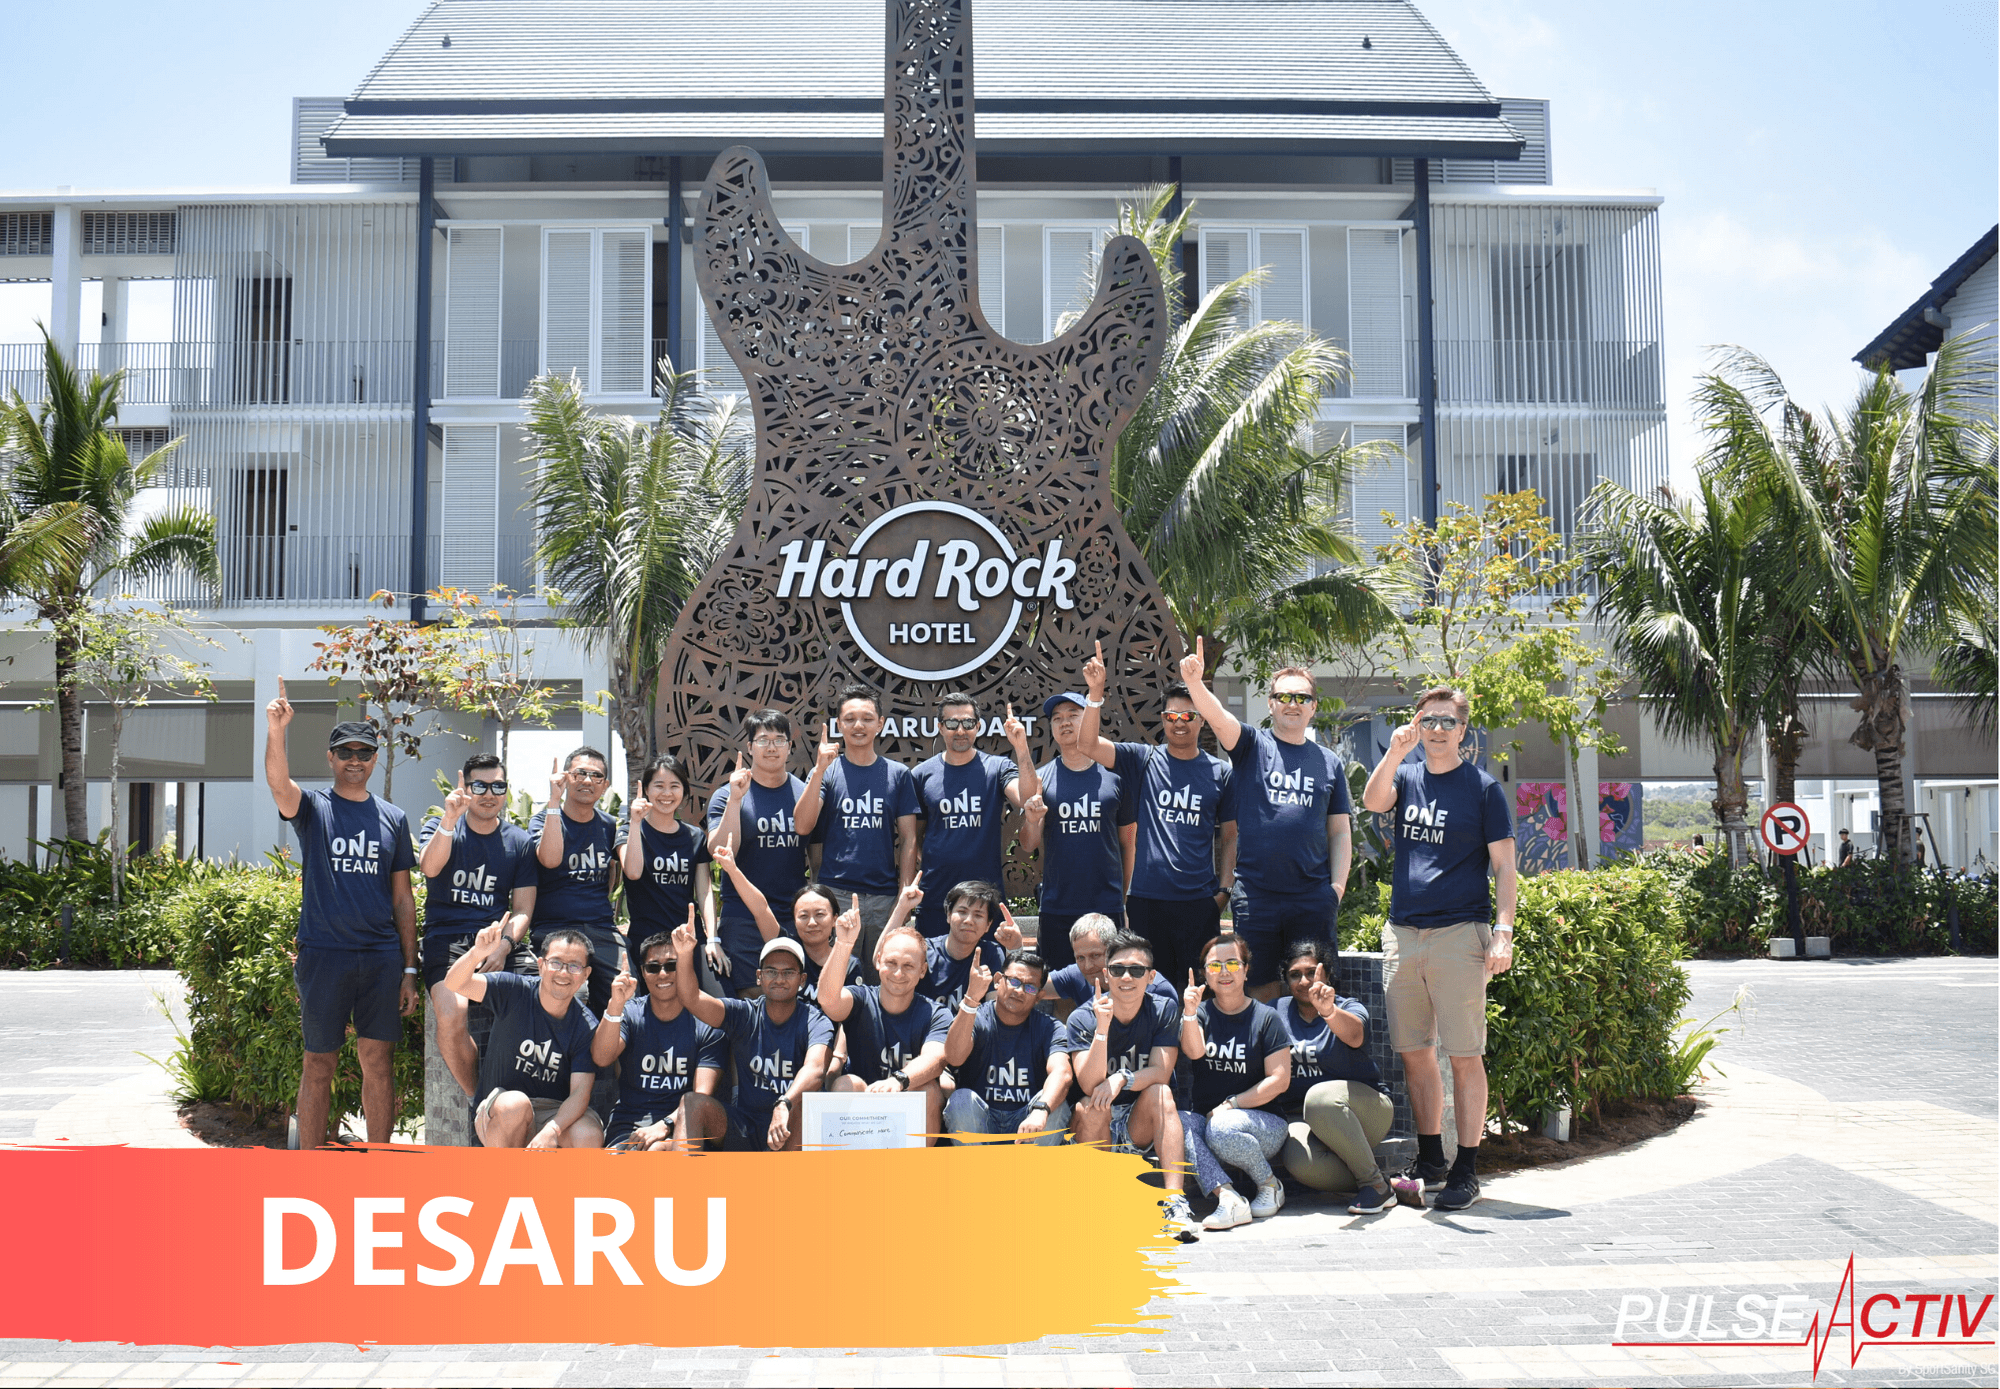 Desaru Overseas Team Building